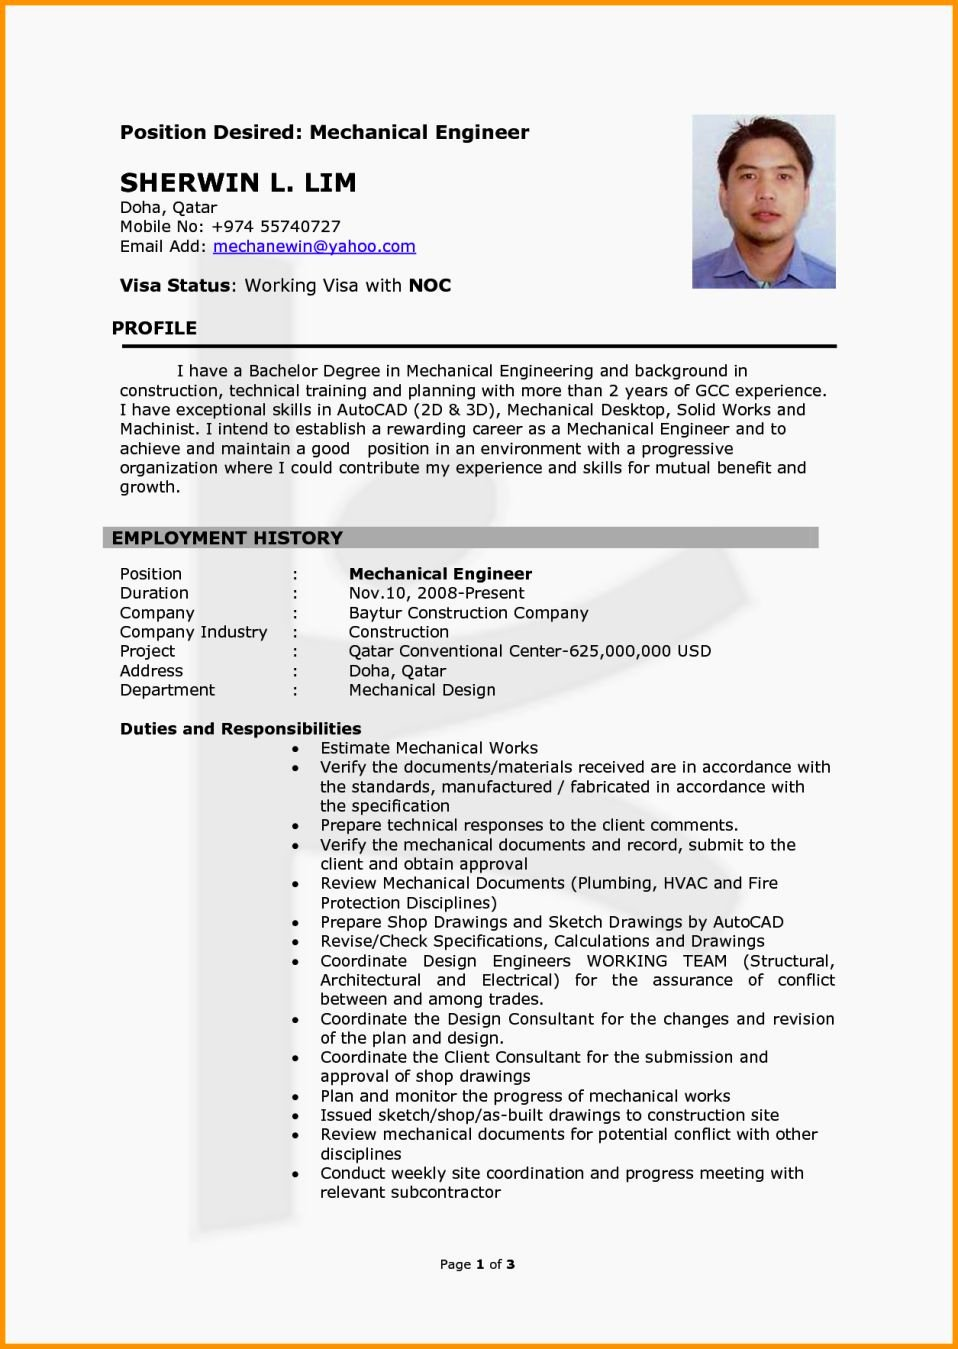 Mechanical Engineer Resume Templates Awesome Mechanical Engineer Cv Template Resume Template